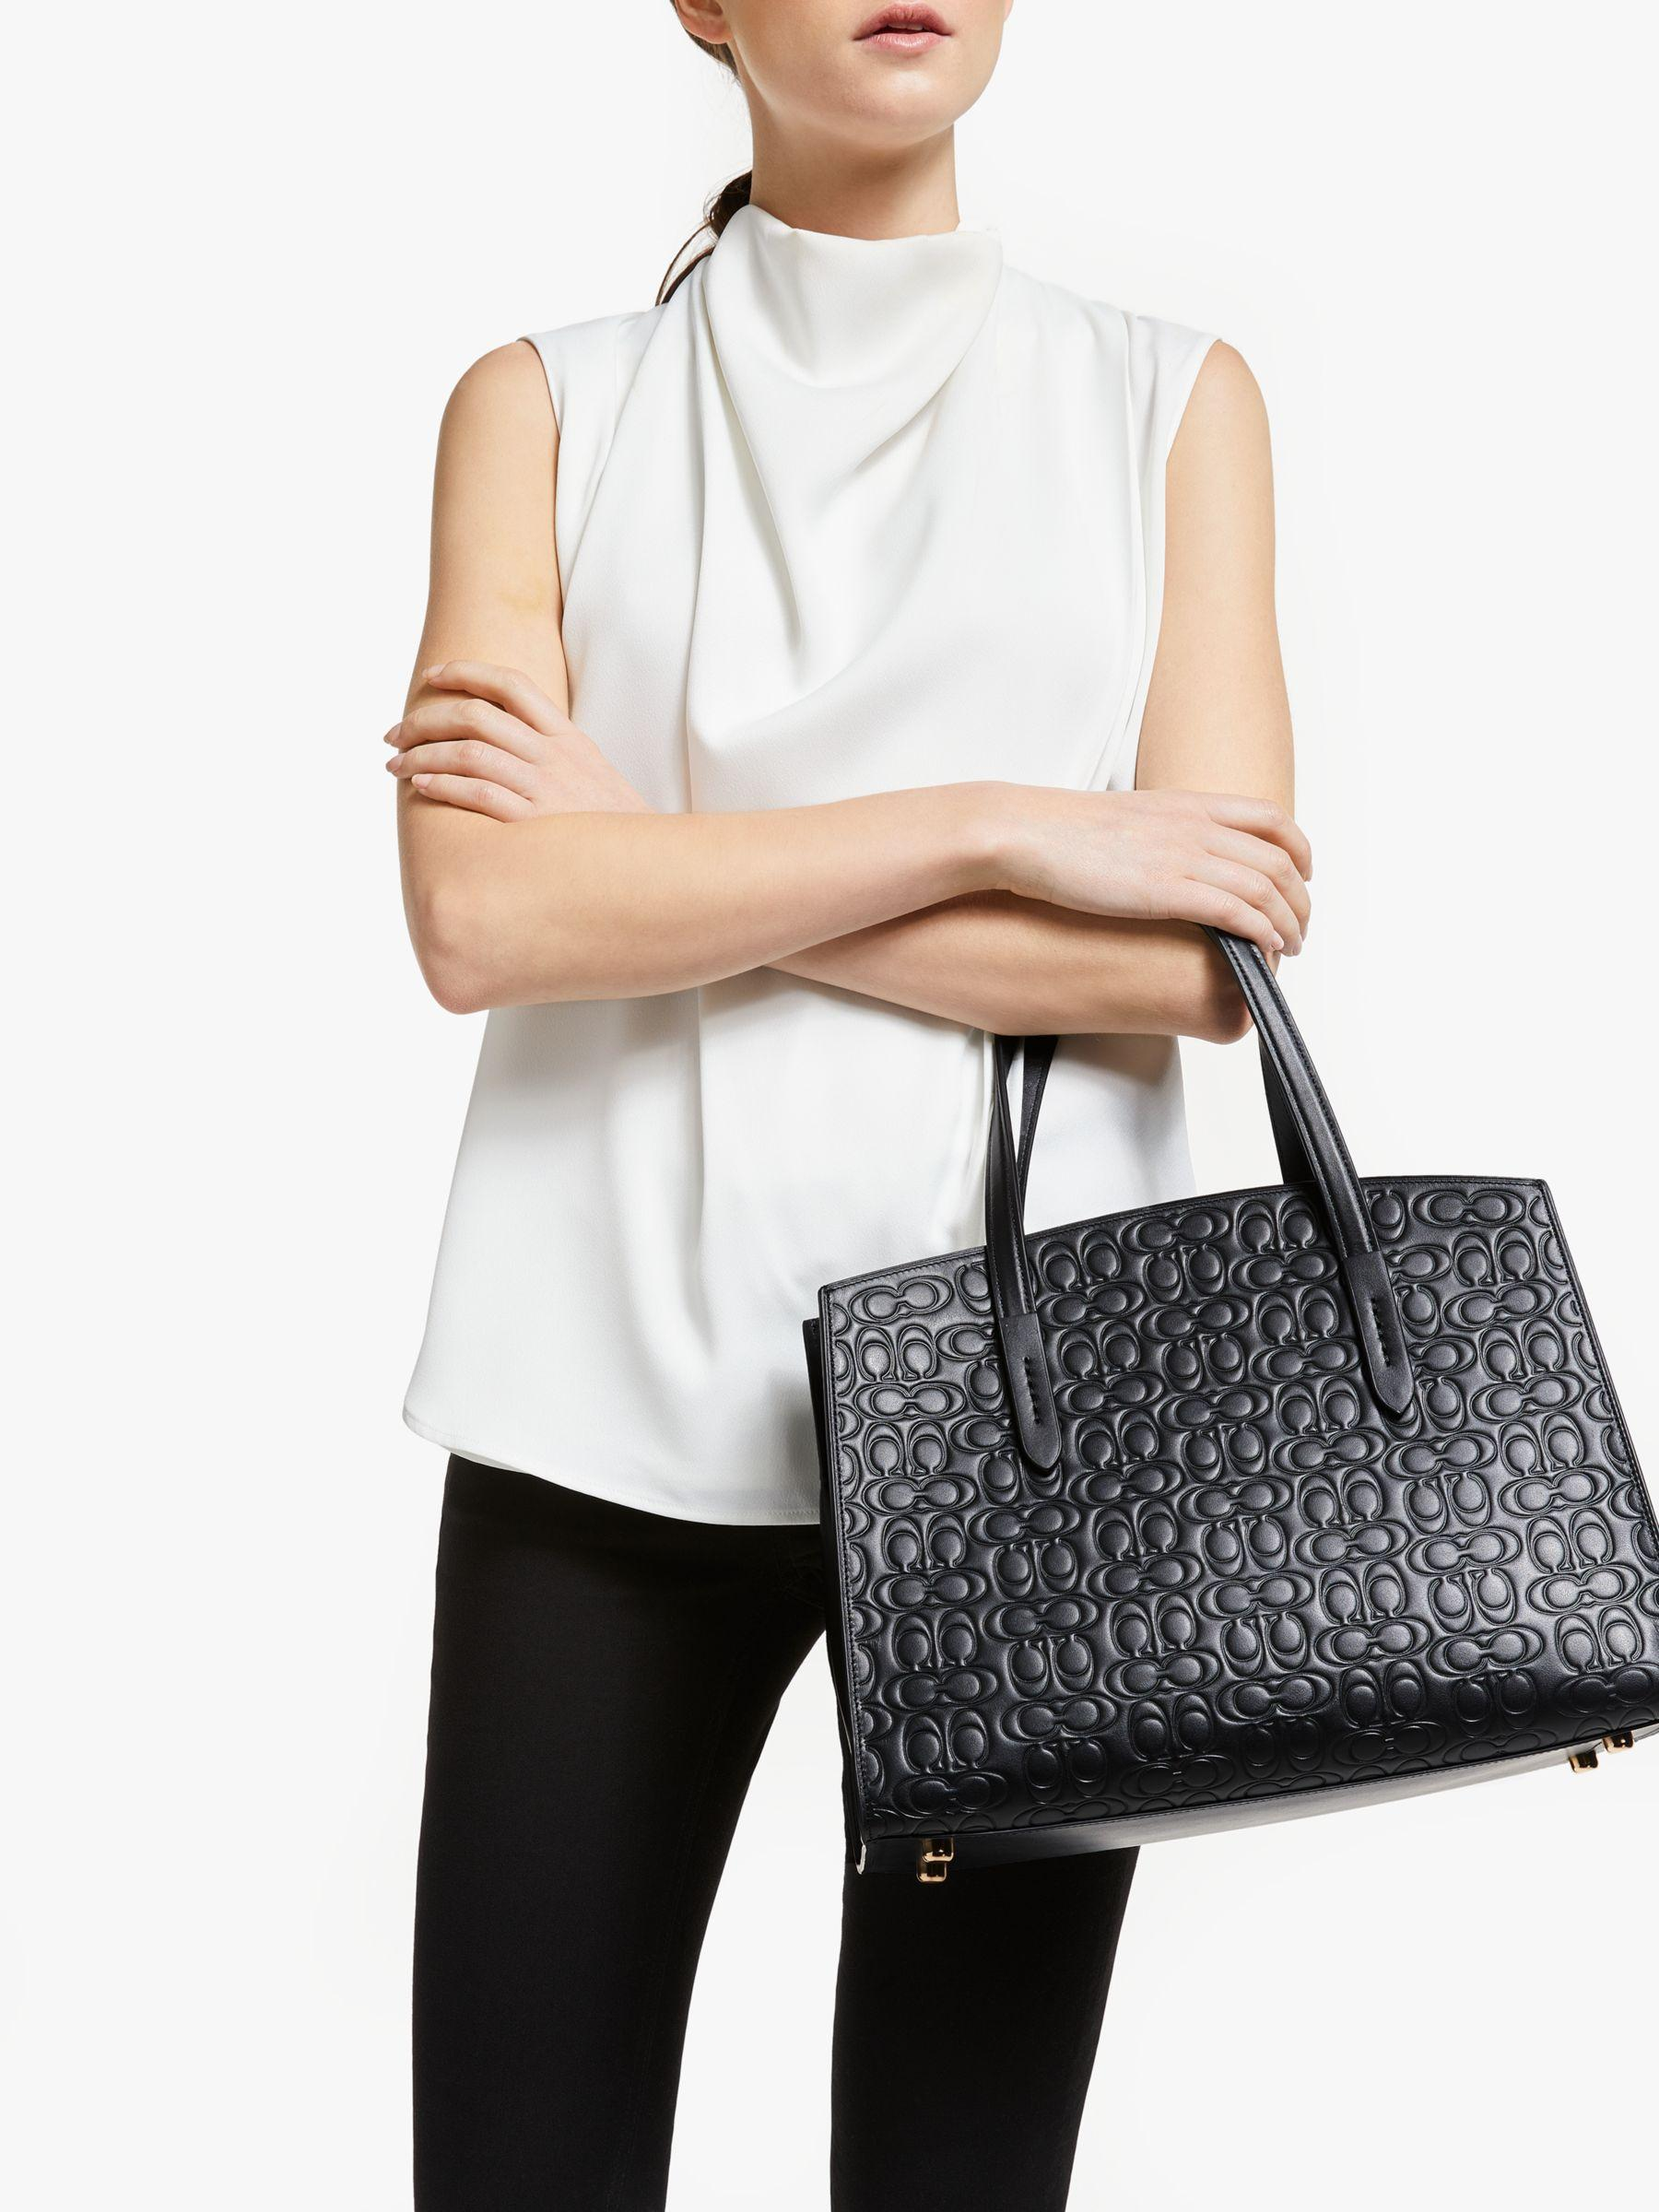 c017a0d5c889e0 COACH Charlie Leather Carryall Tote Bag in Black - Lyst